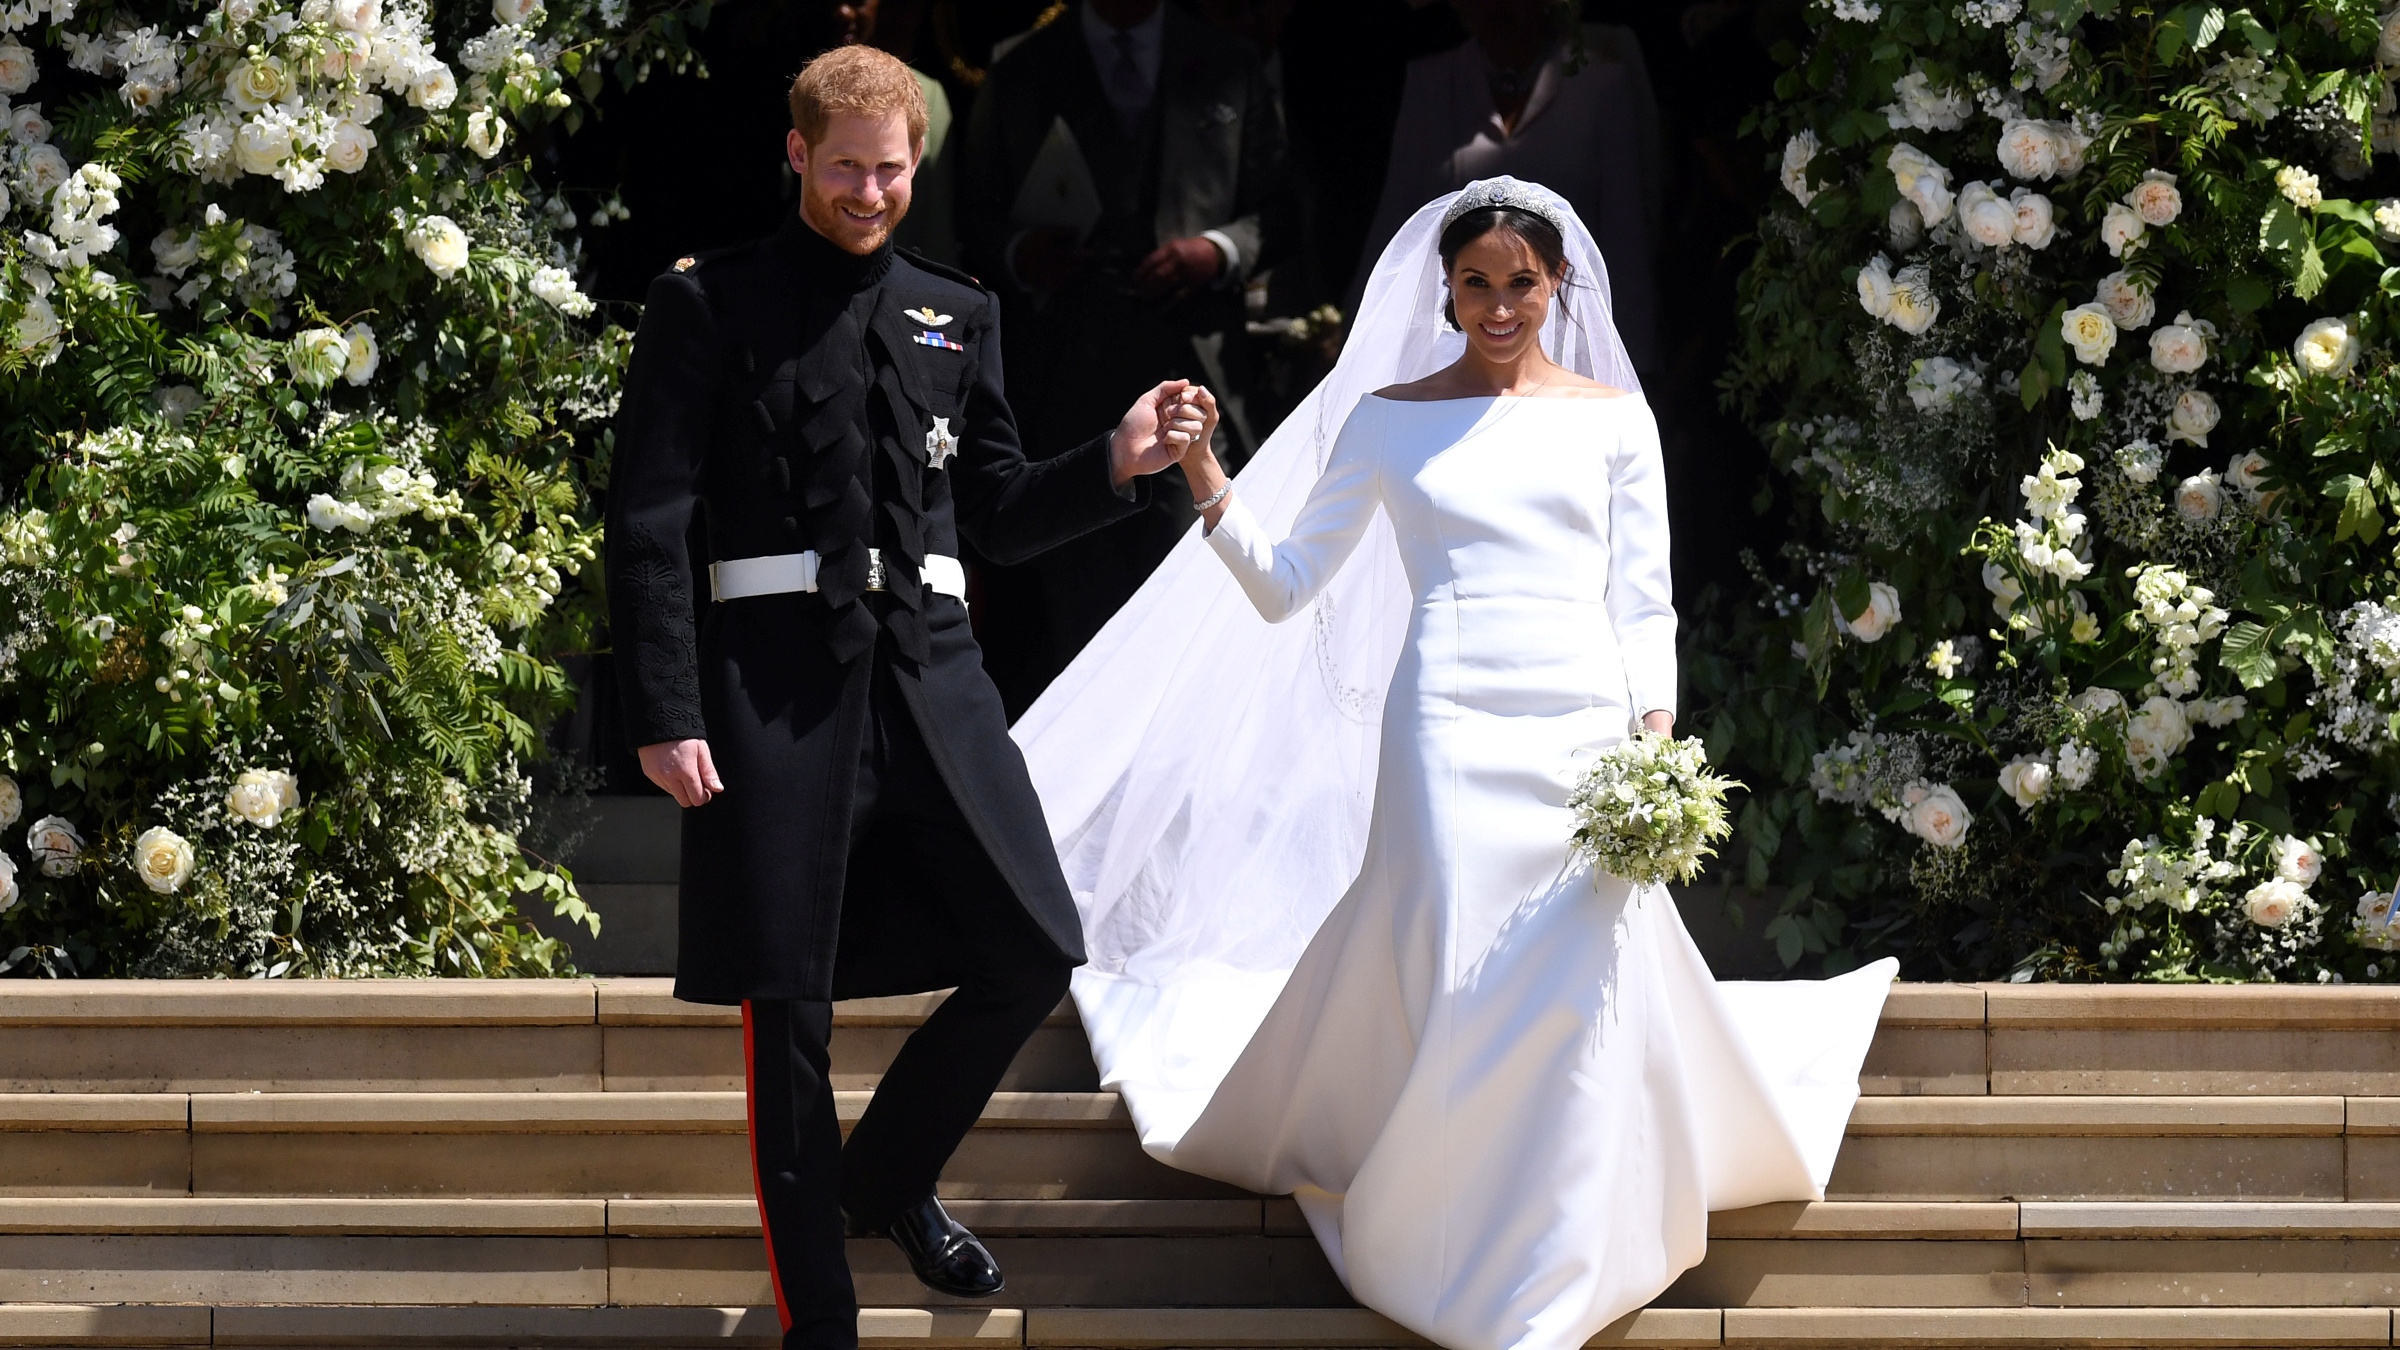 Britain's Prince Harry, Duke of Sussex and Meghan, Duchess of Sussex exit St George's Chapel in Windsor Castle after their royal wedding ceremony, in Windsor, Britain, May 19, 2018.